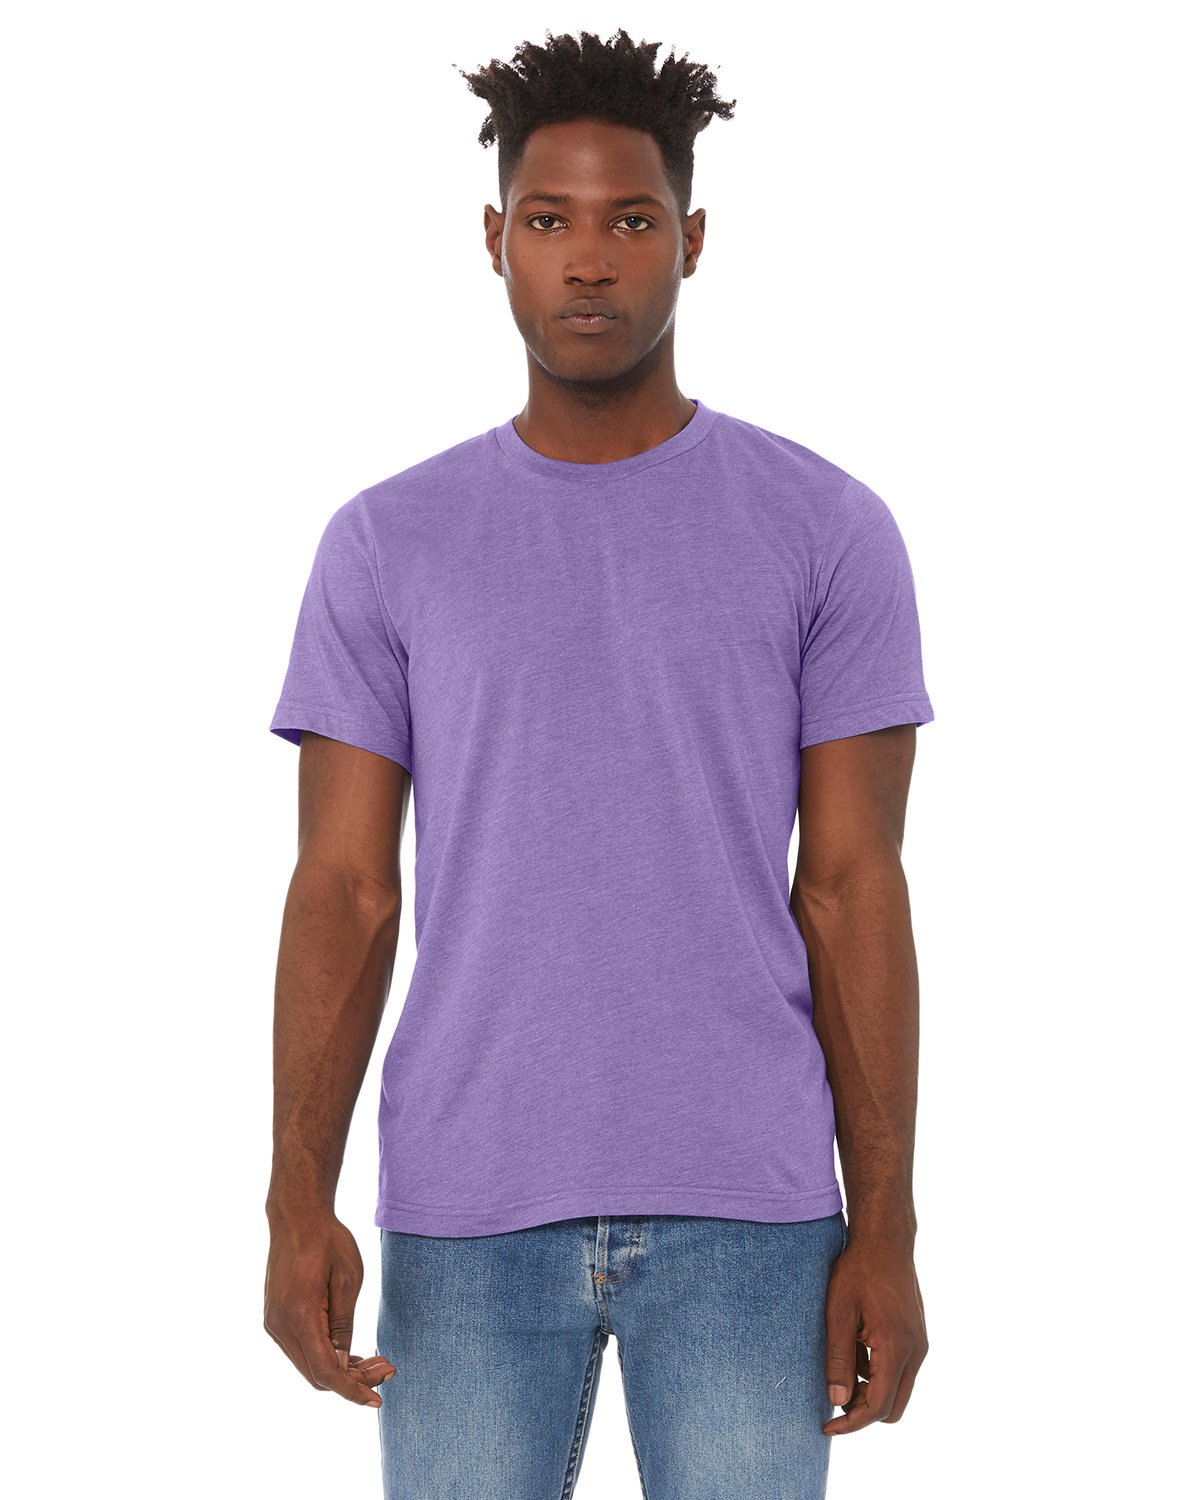 Bella + Canvas Unisex Heather CVC T-Shirt HEATHER LAPIS